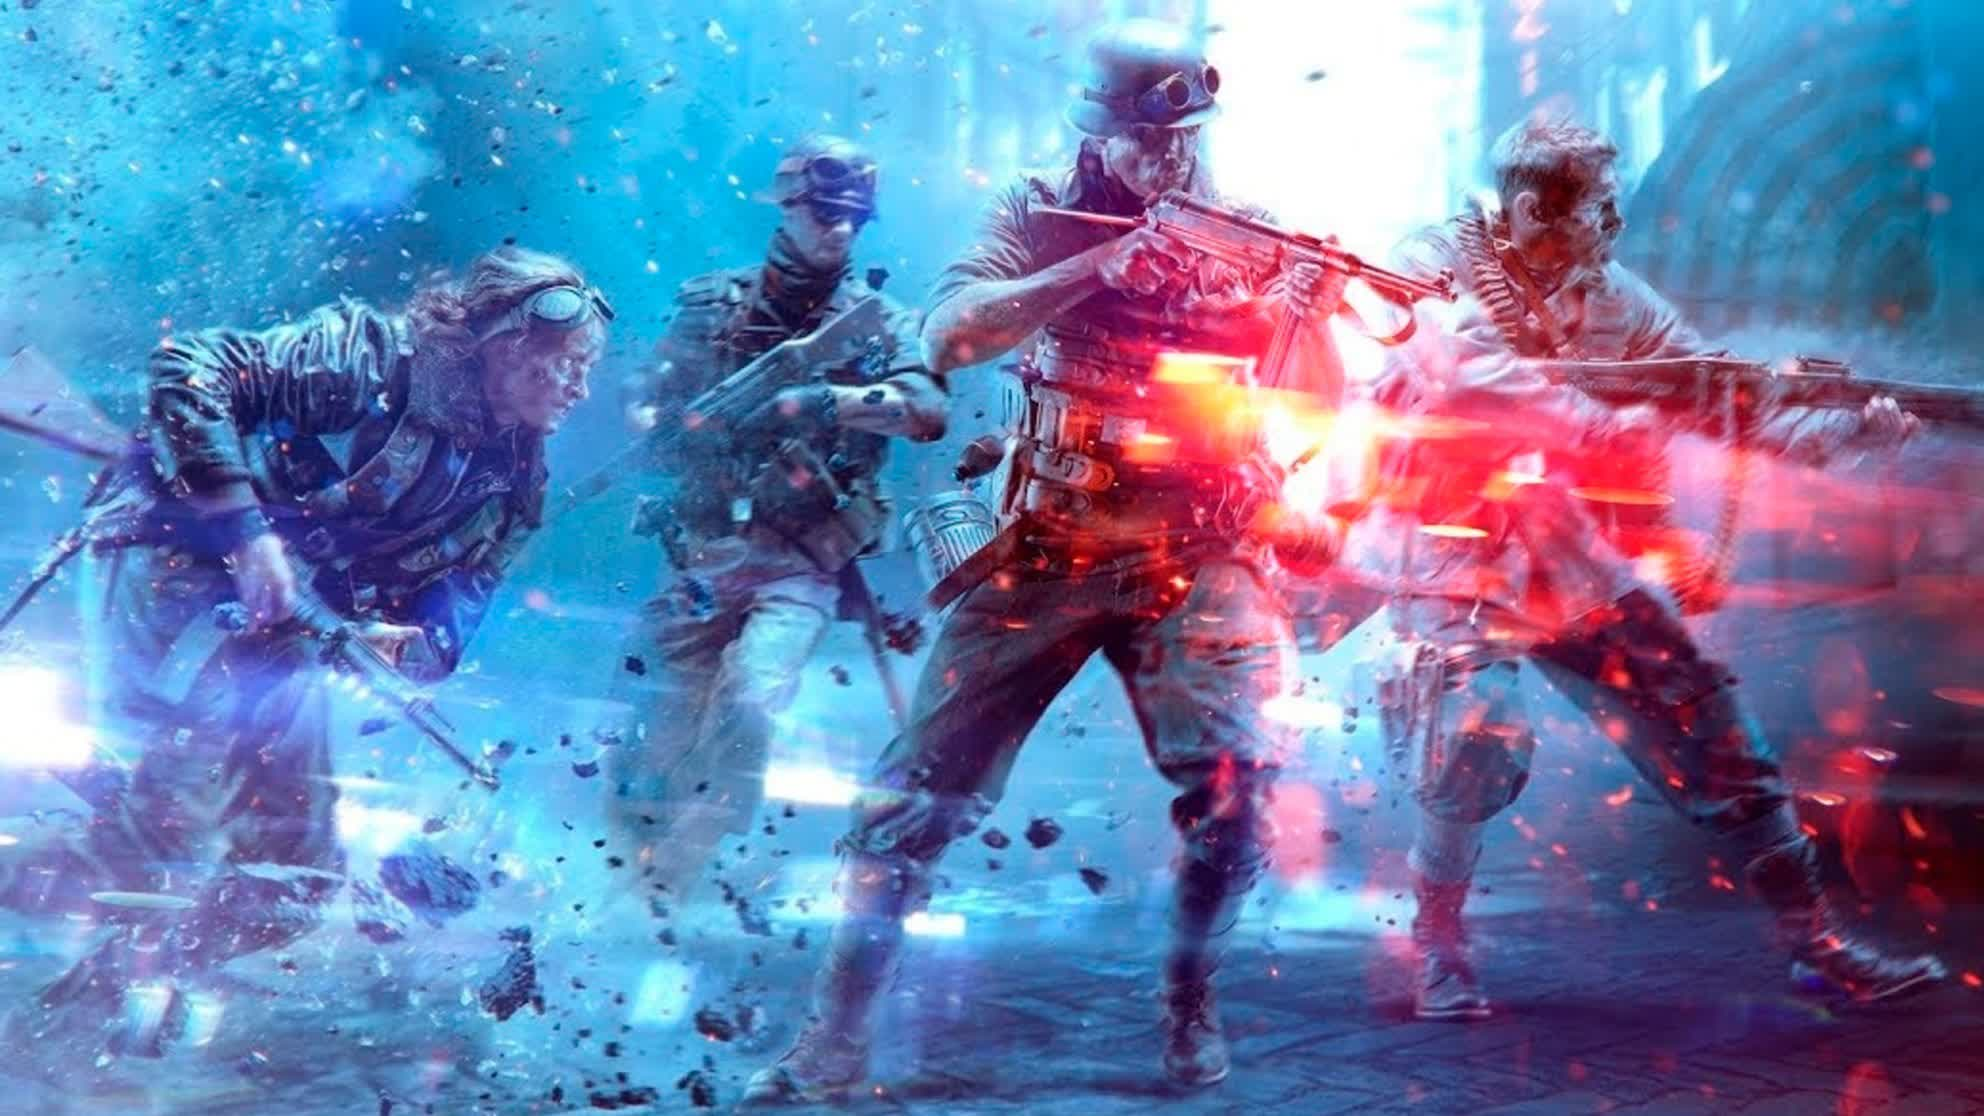 EA confirms upcoming Battlefield game will launch on current and next-gen consoles